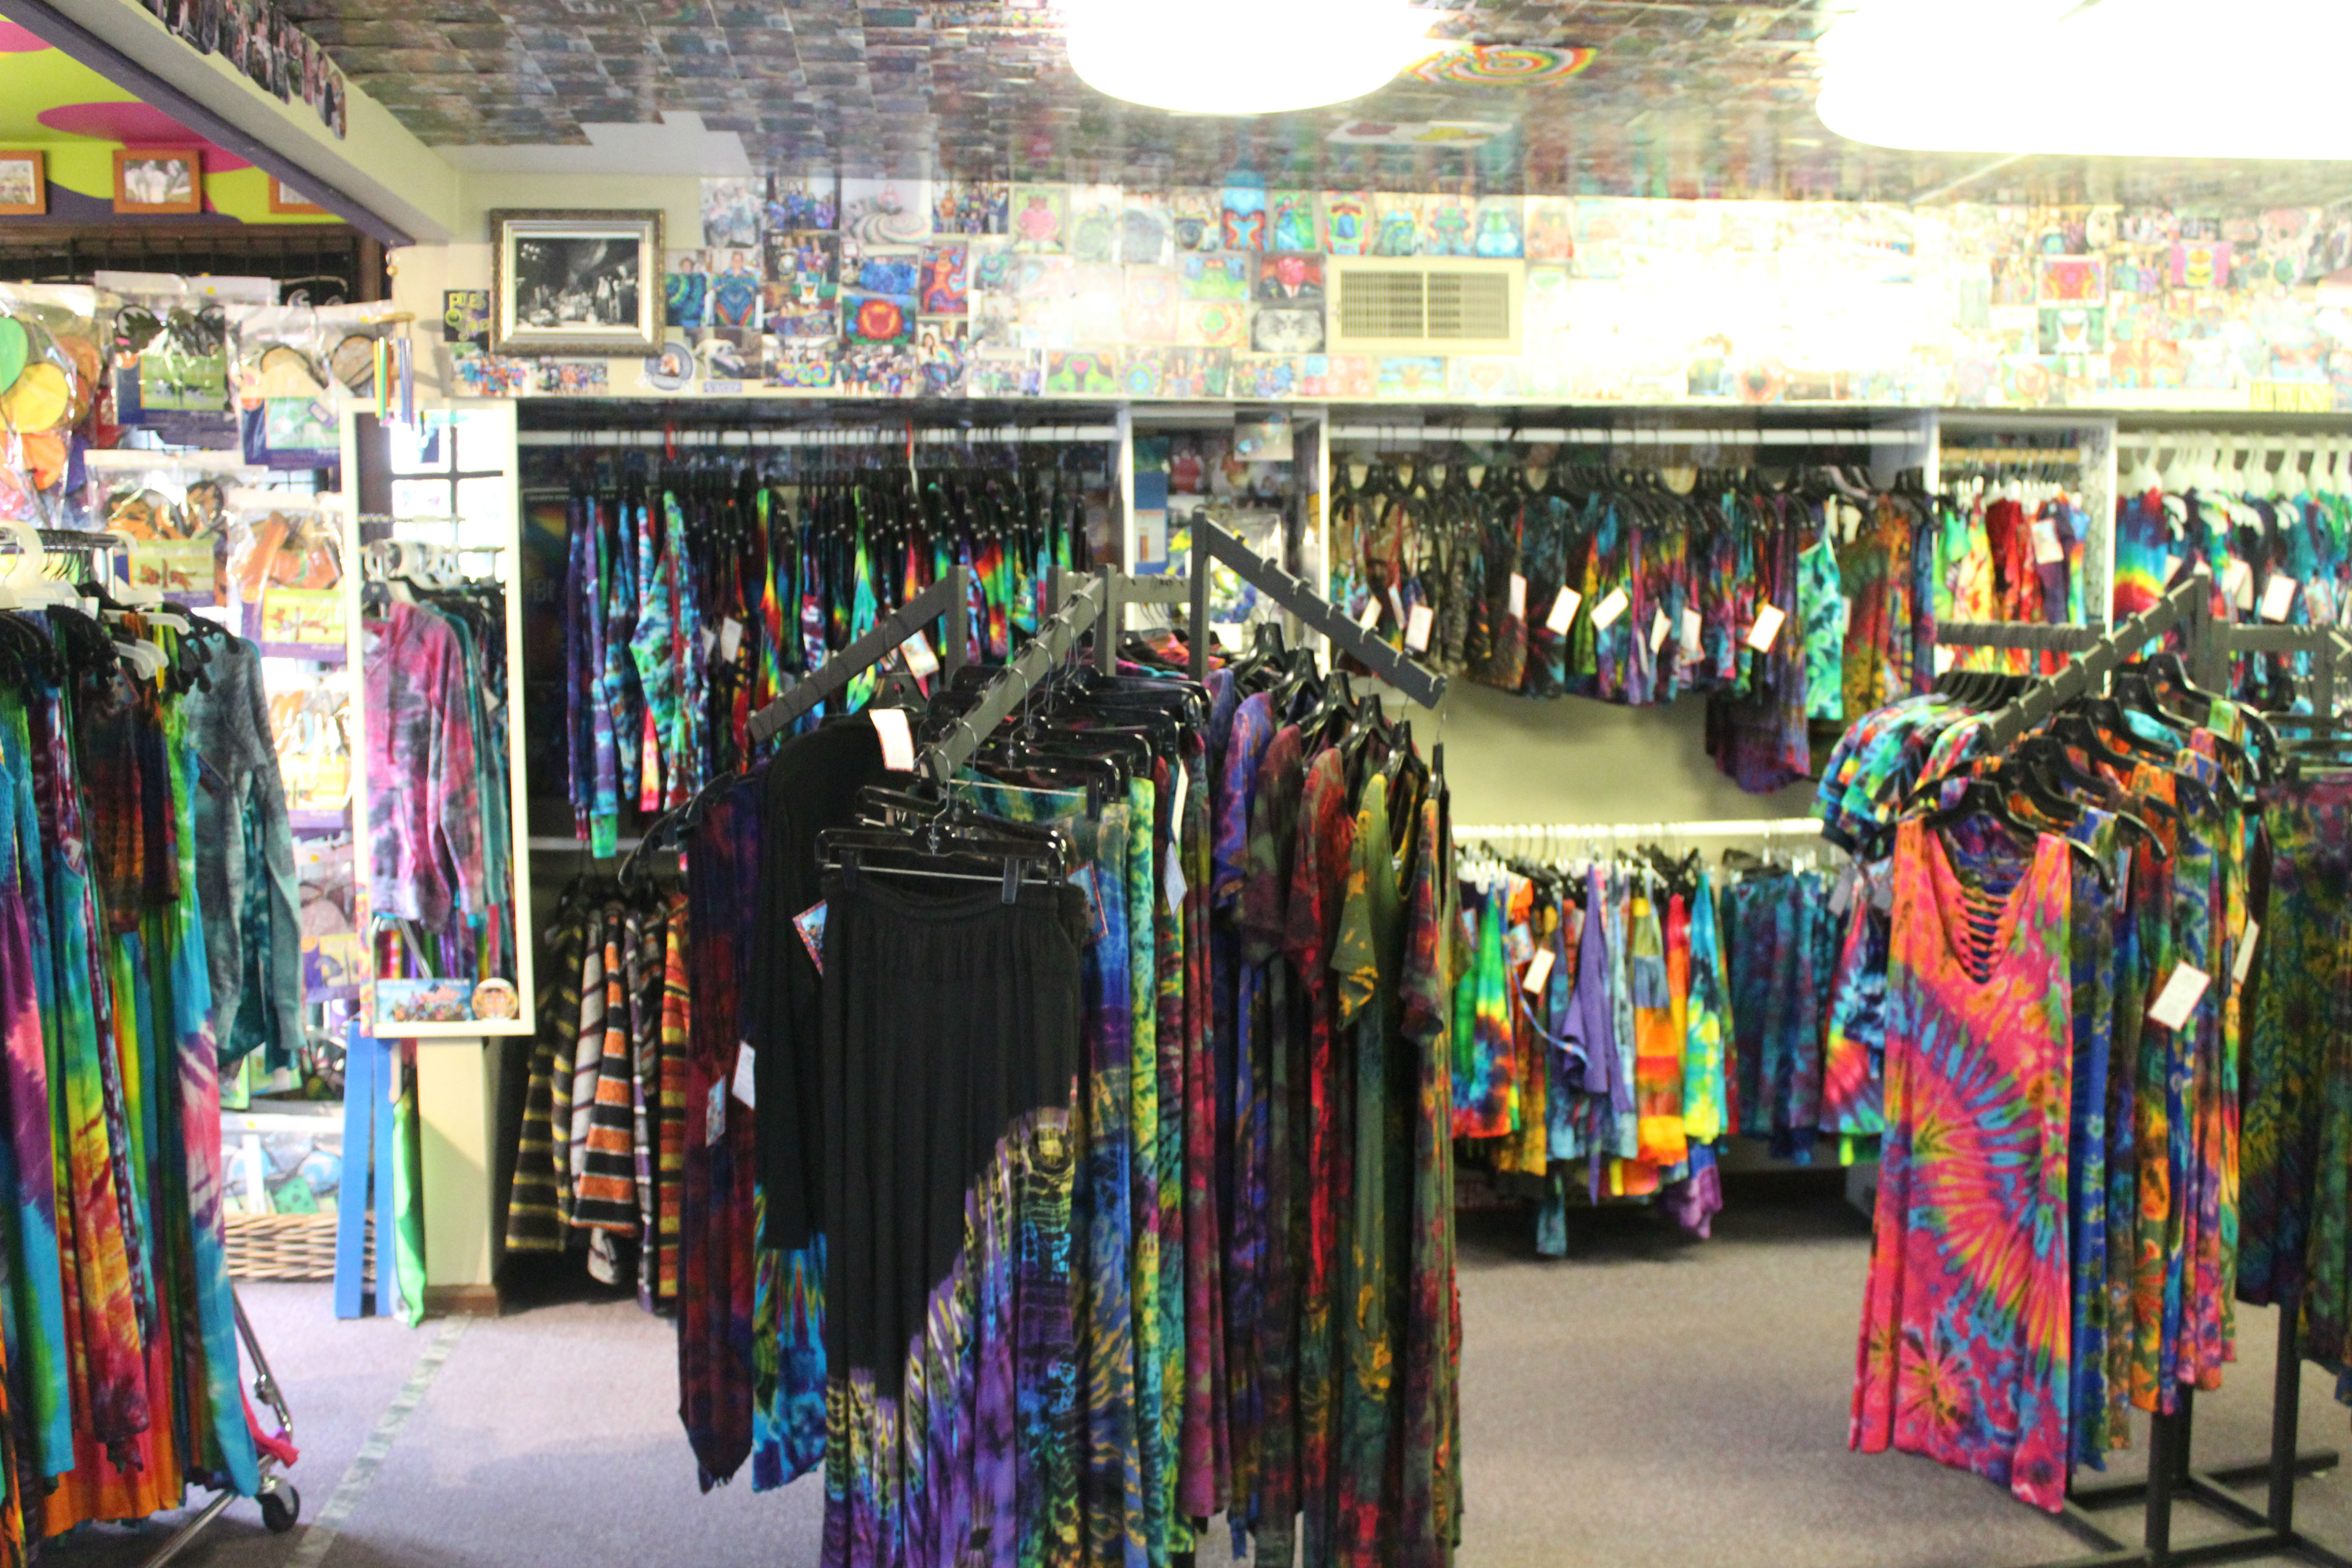 New Hope has an abundance of quirky stores, including fashion boutiques, sex shops, book stores, a tie-dye studio, psychics, ice cream parlors, candy stores, a comic book store, jewelers and more!{ }(Image: Julie Gallagher)